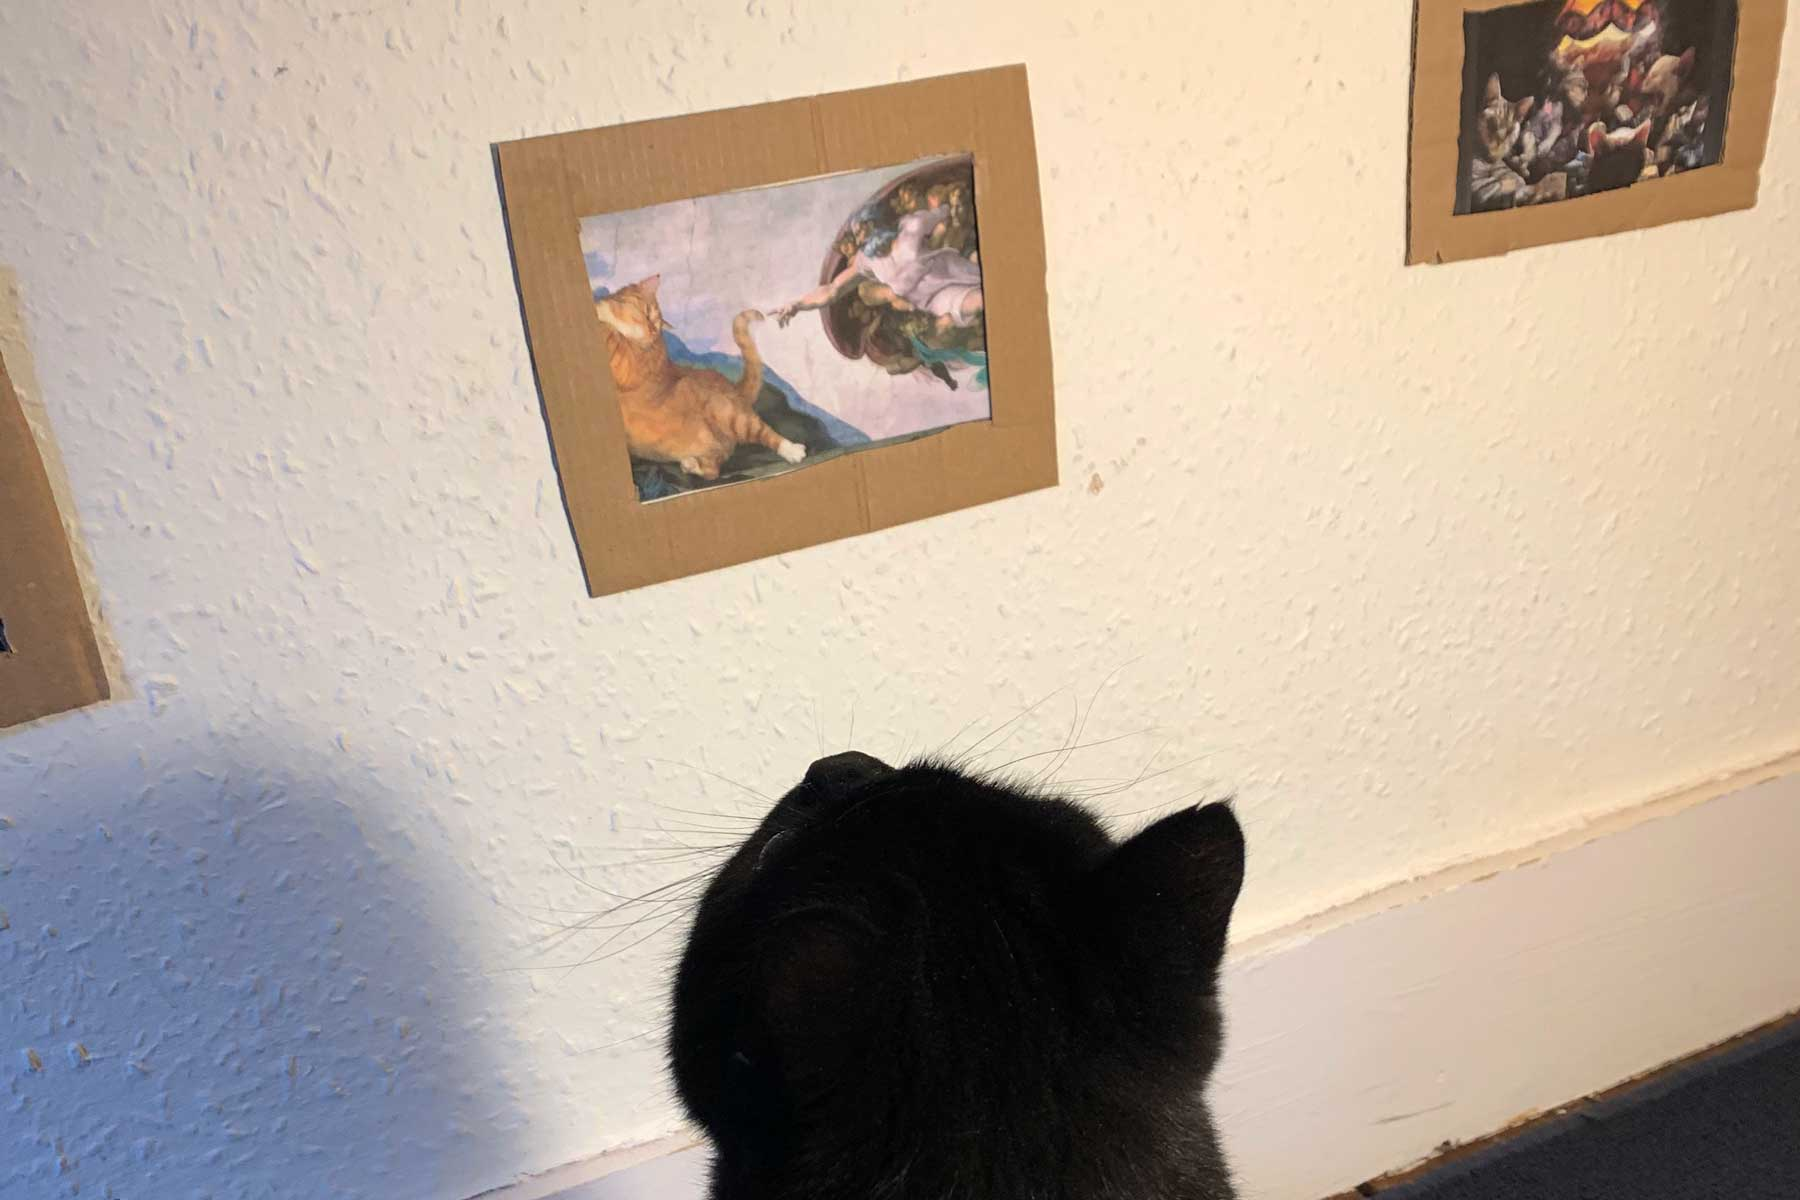 Jake Lambert and Jessica Atkins create art gallery for their one-eyed cat, Richard Parker Littlelostlad